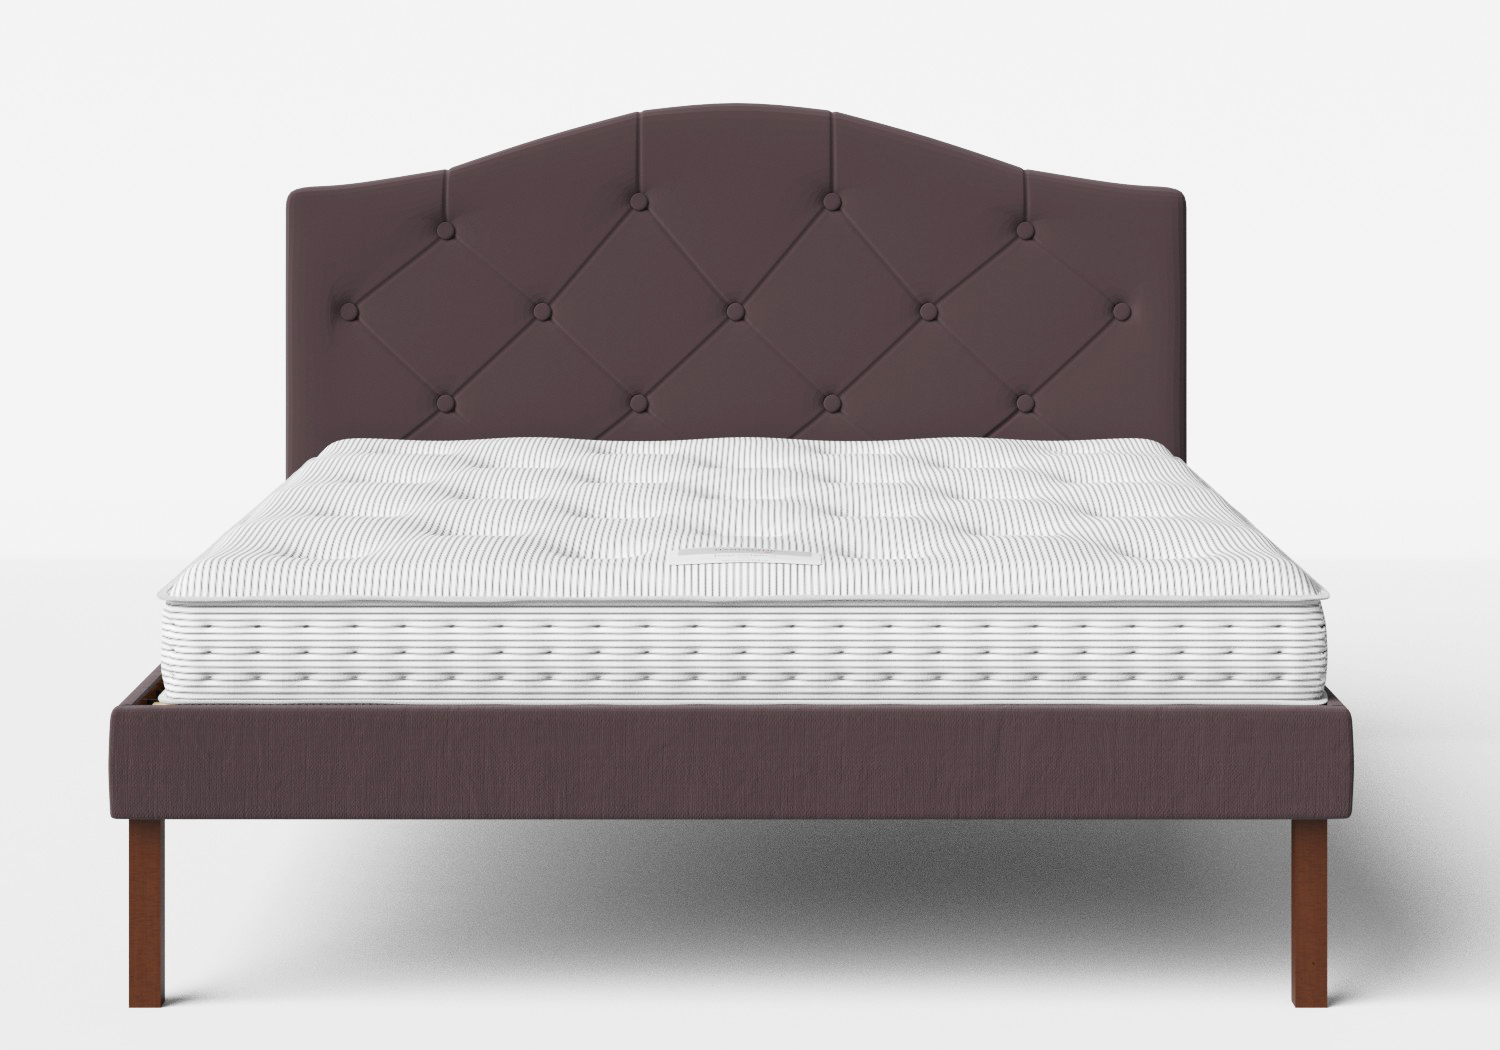 Yoshida Upholstered Bed with Aubergine fabric with buttoning shown with Juno 1 mattress